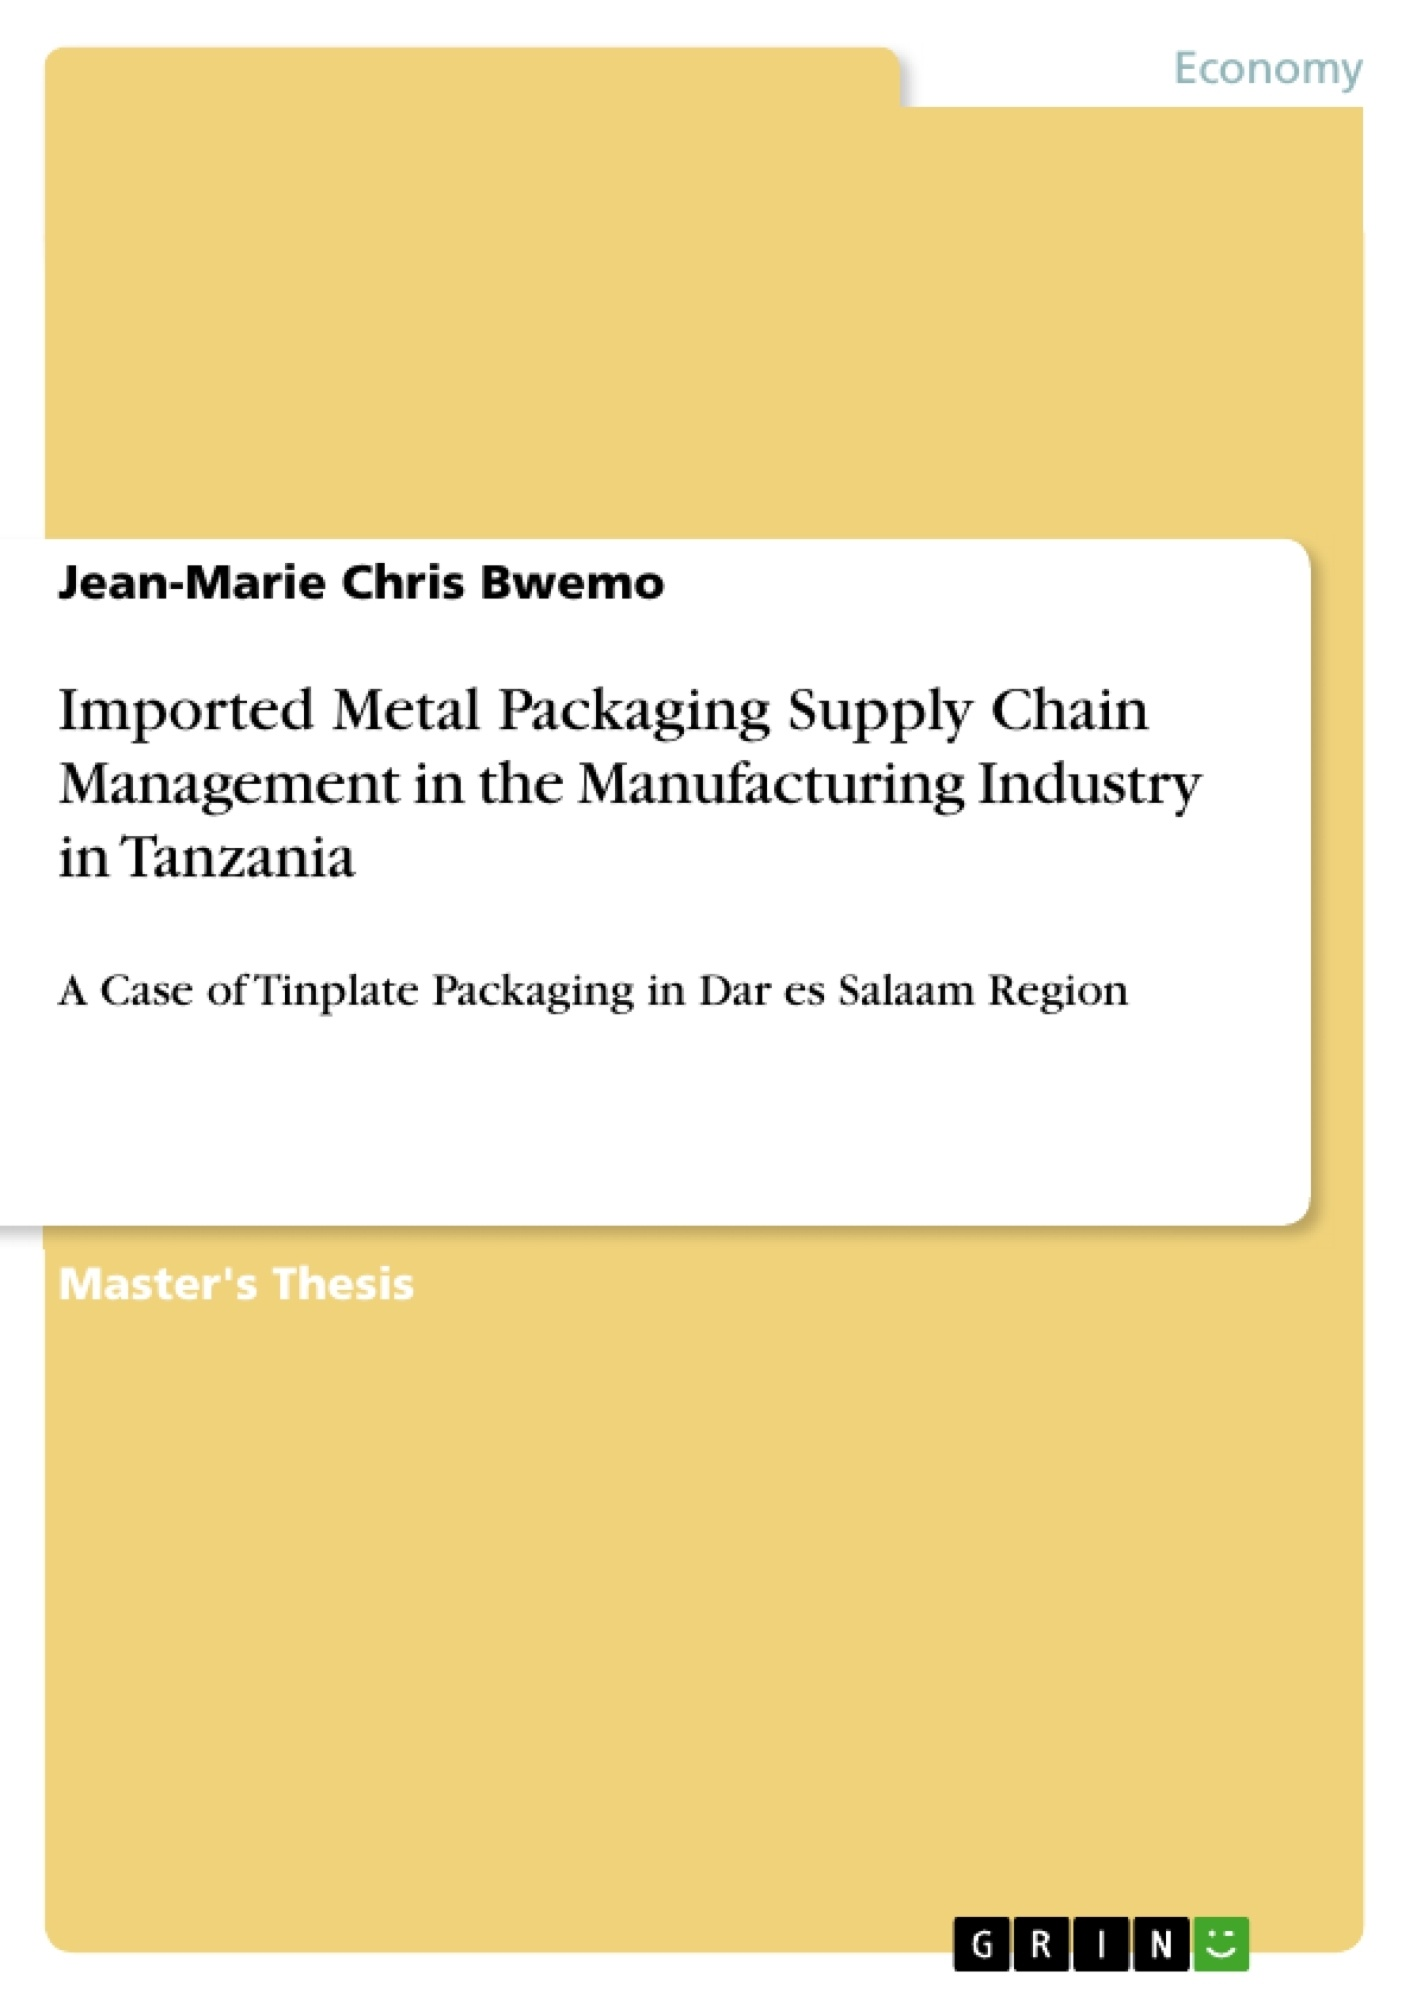 Title: Imported Metal Packaging Supply Chain Management in the Manufacturing Industry in Tanzania